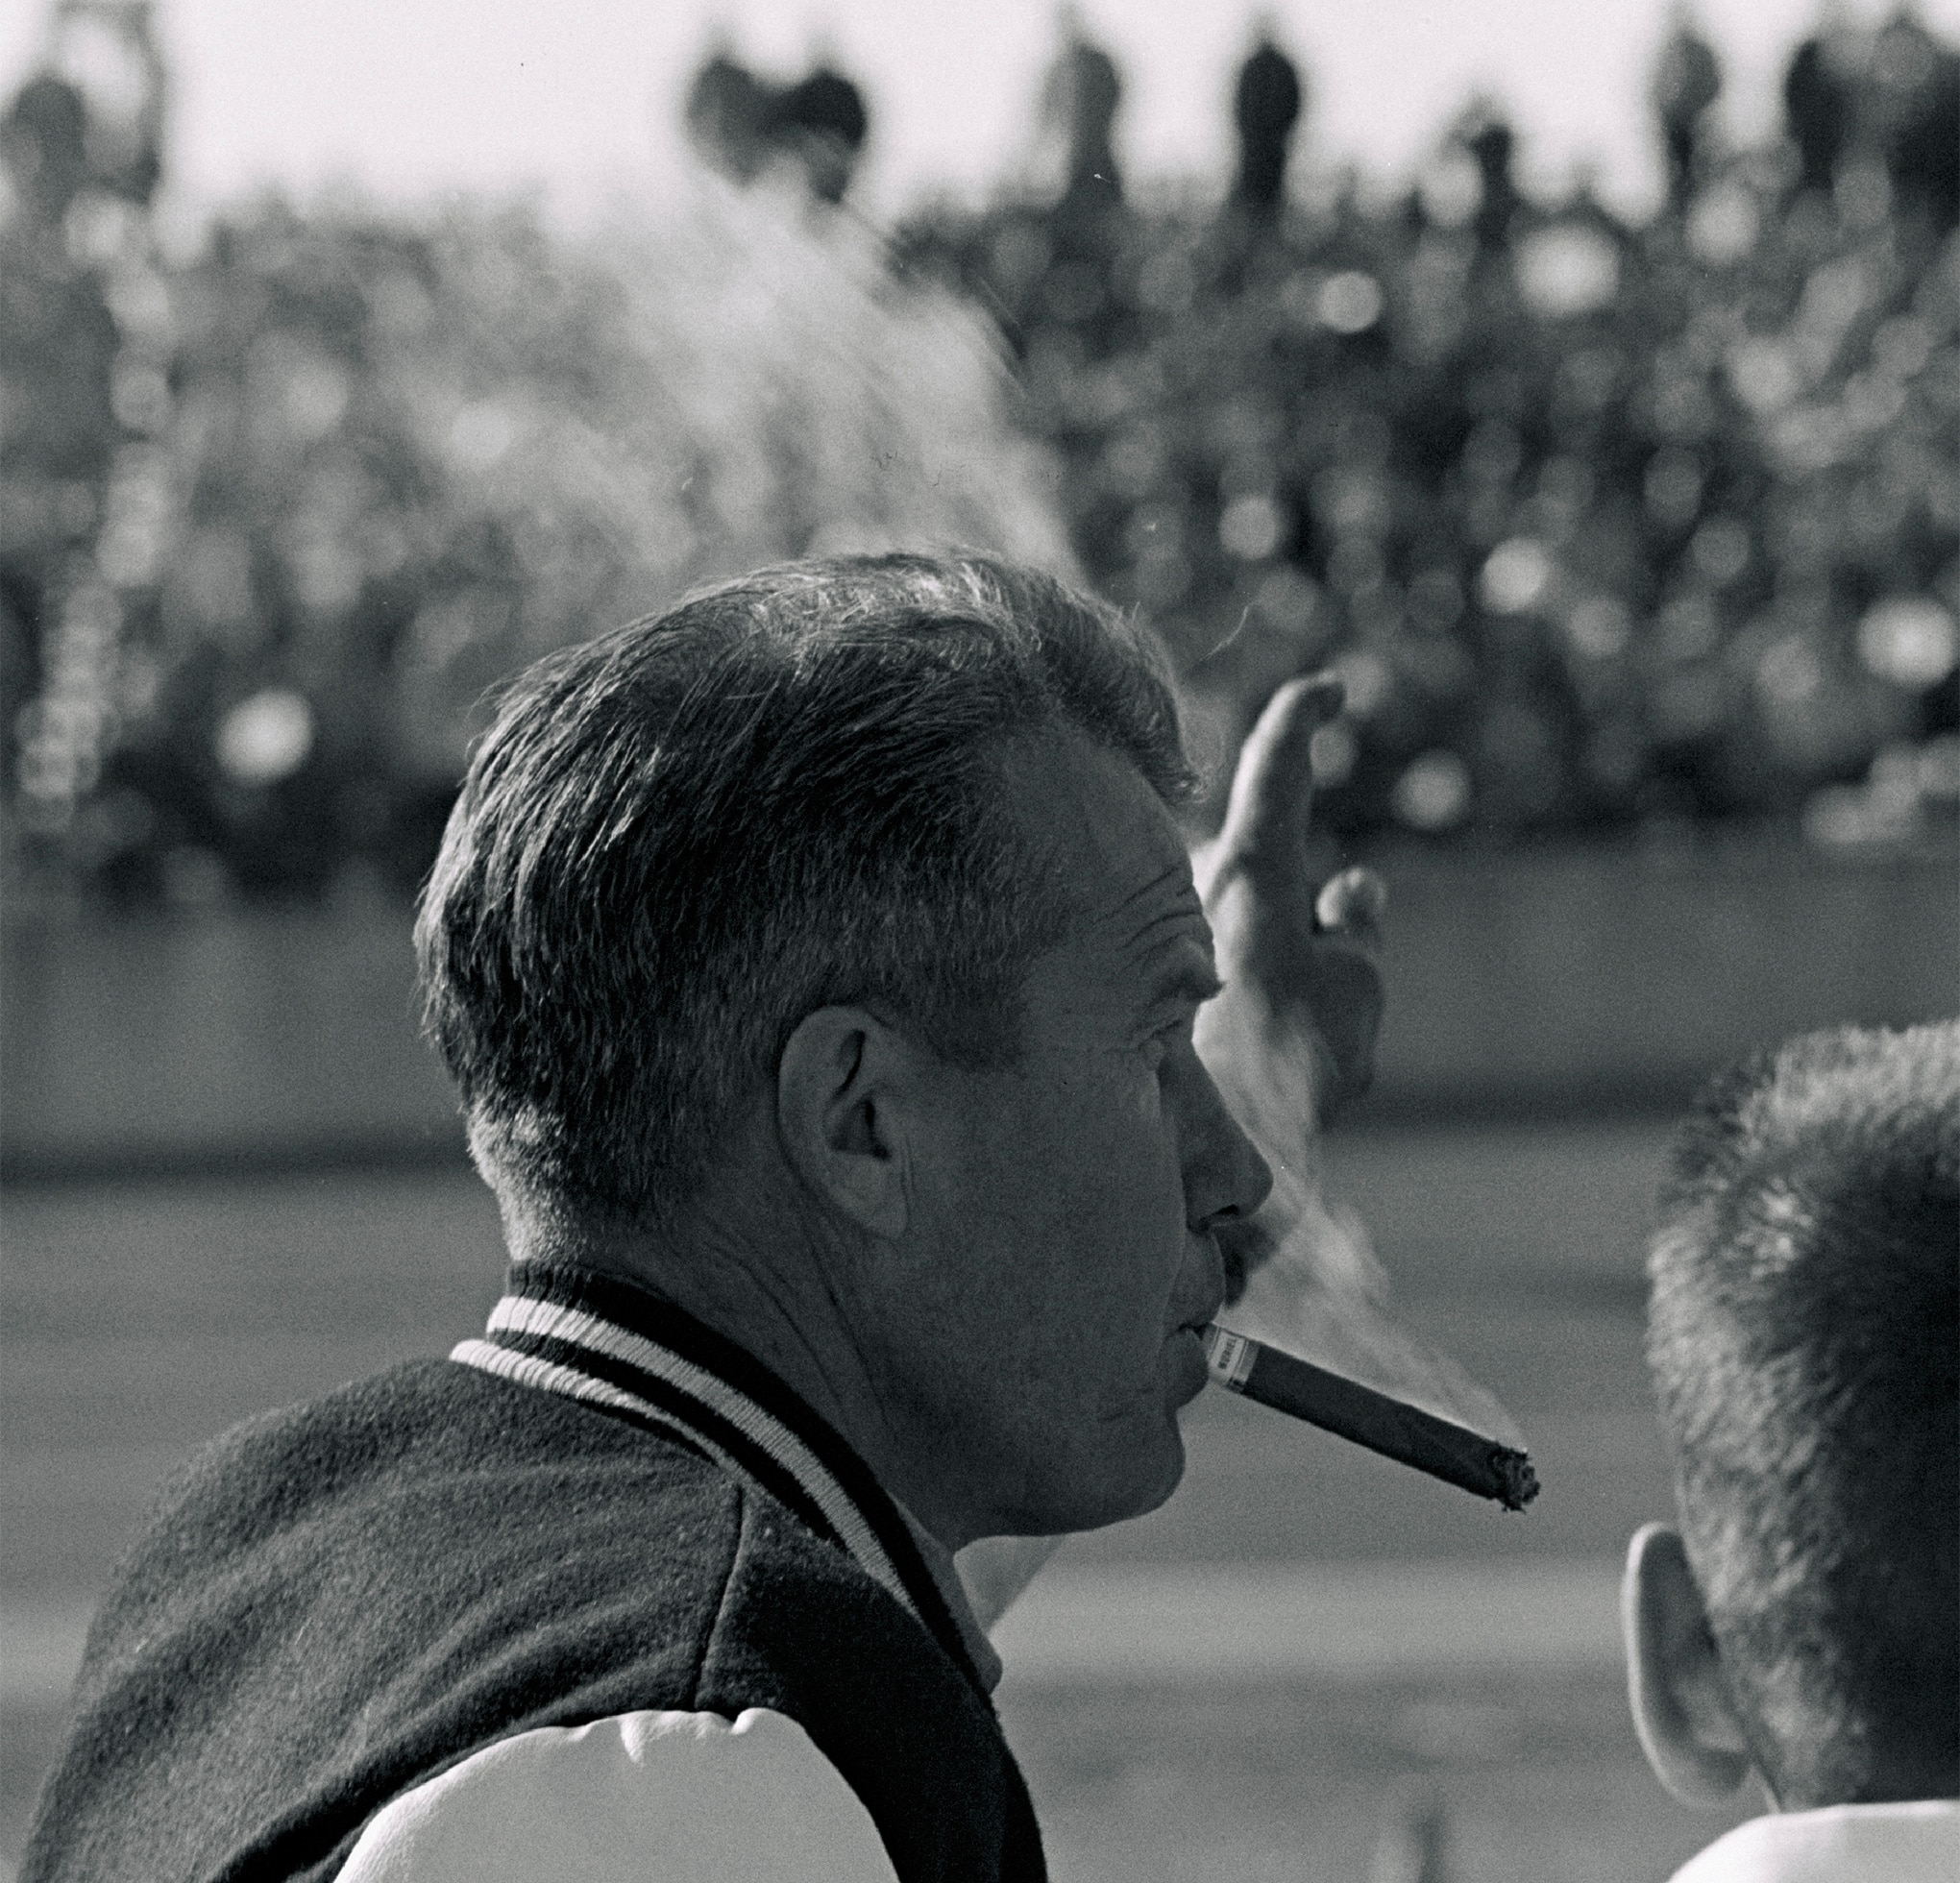 His son's breakthrough win followed Lee Petty's victory in the inaugural 1959 Daytona 500. This was the first major auto race ever won by a both a father and son. Lee, who retired from driving not long after recovering from a spectacular crash in the 1961 500 (see Nov. '16 HRD), became NASCAR's only three-time Grand National champion (1954, 1958, 1959) before transitioning to team owner and crewchief.